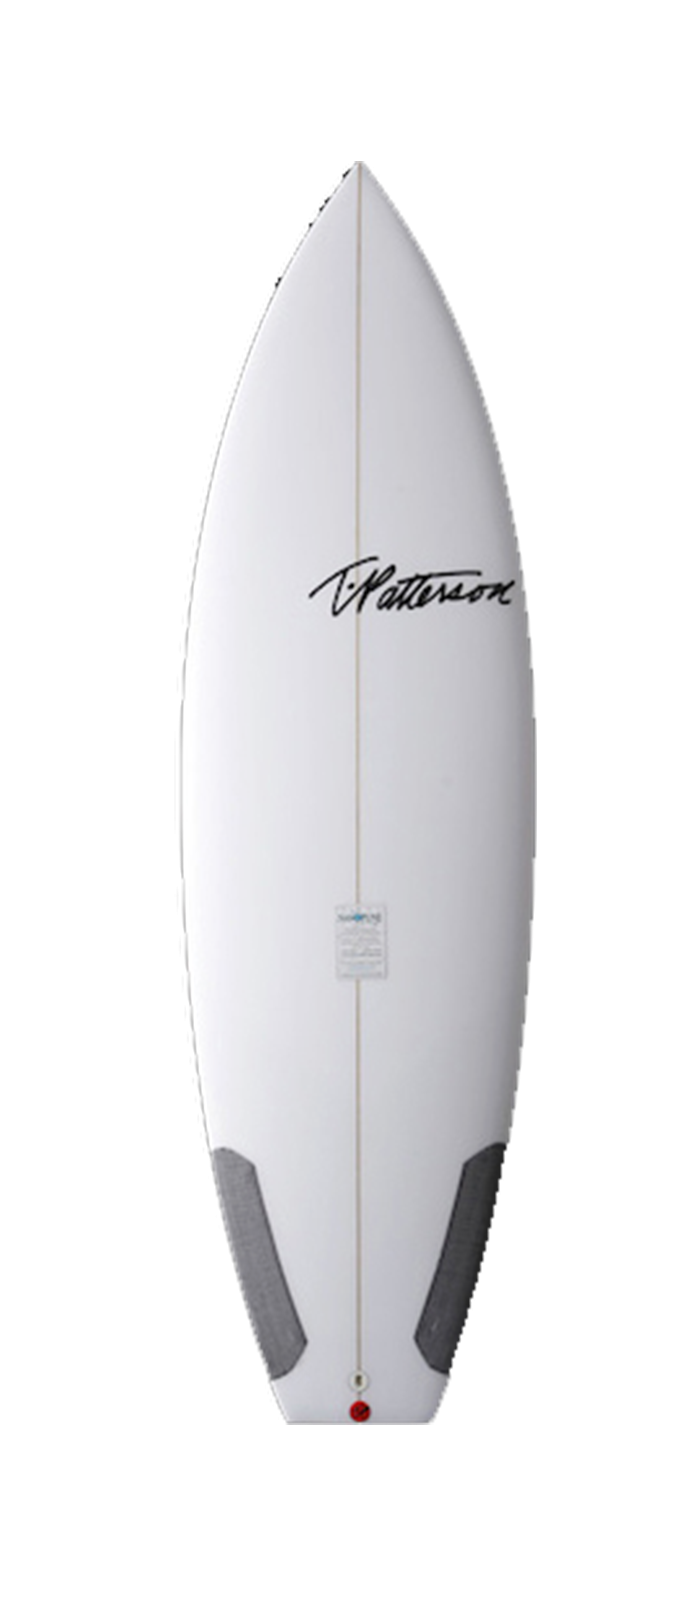 Chopped Clam surfboard model